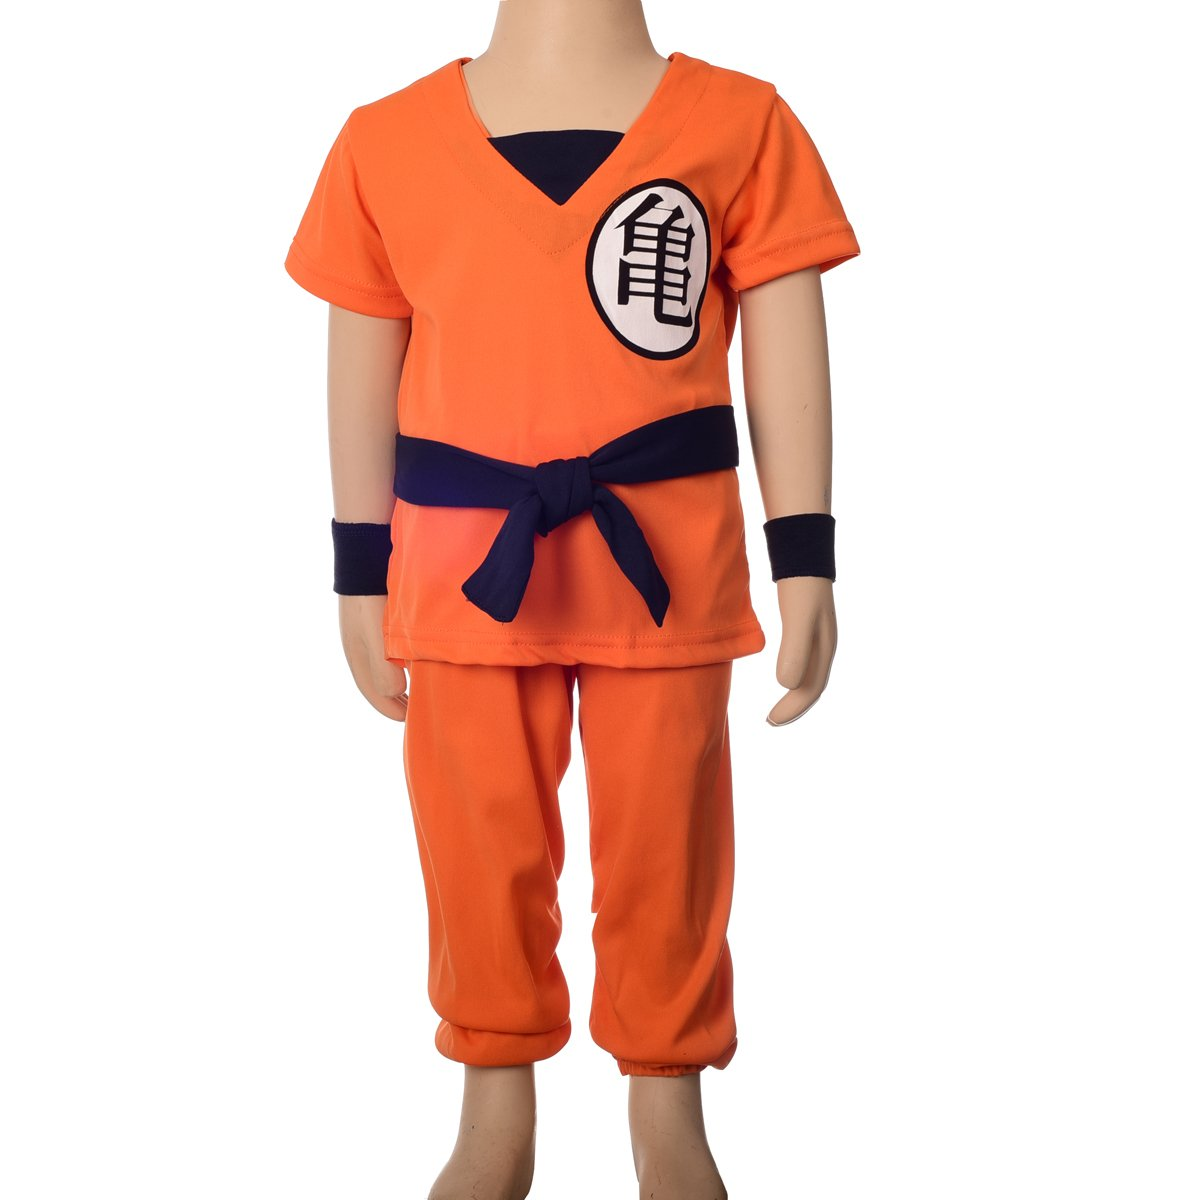 Amazon Dressy Daisy Boys Dragon Ball Son Goku Fancy Costumes